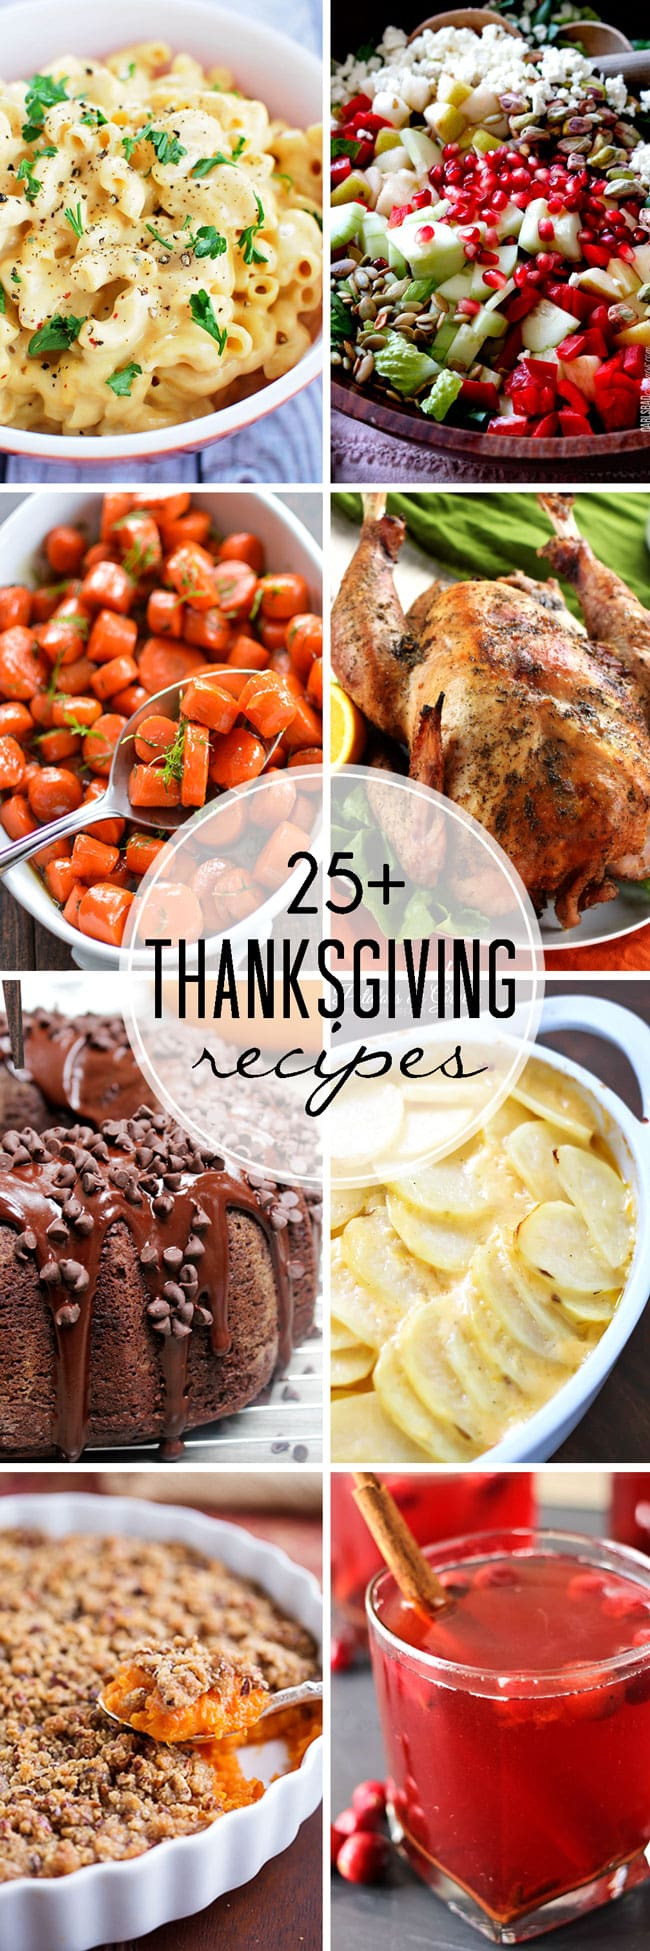 Best Turkey Recipes For Thanksgiving  25 Thanksgiving Recipes That Skinny Chick Can Bake